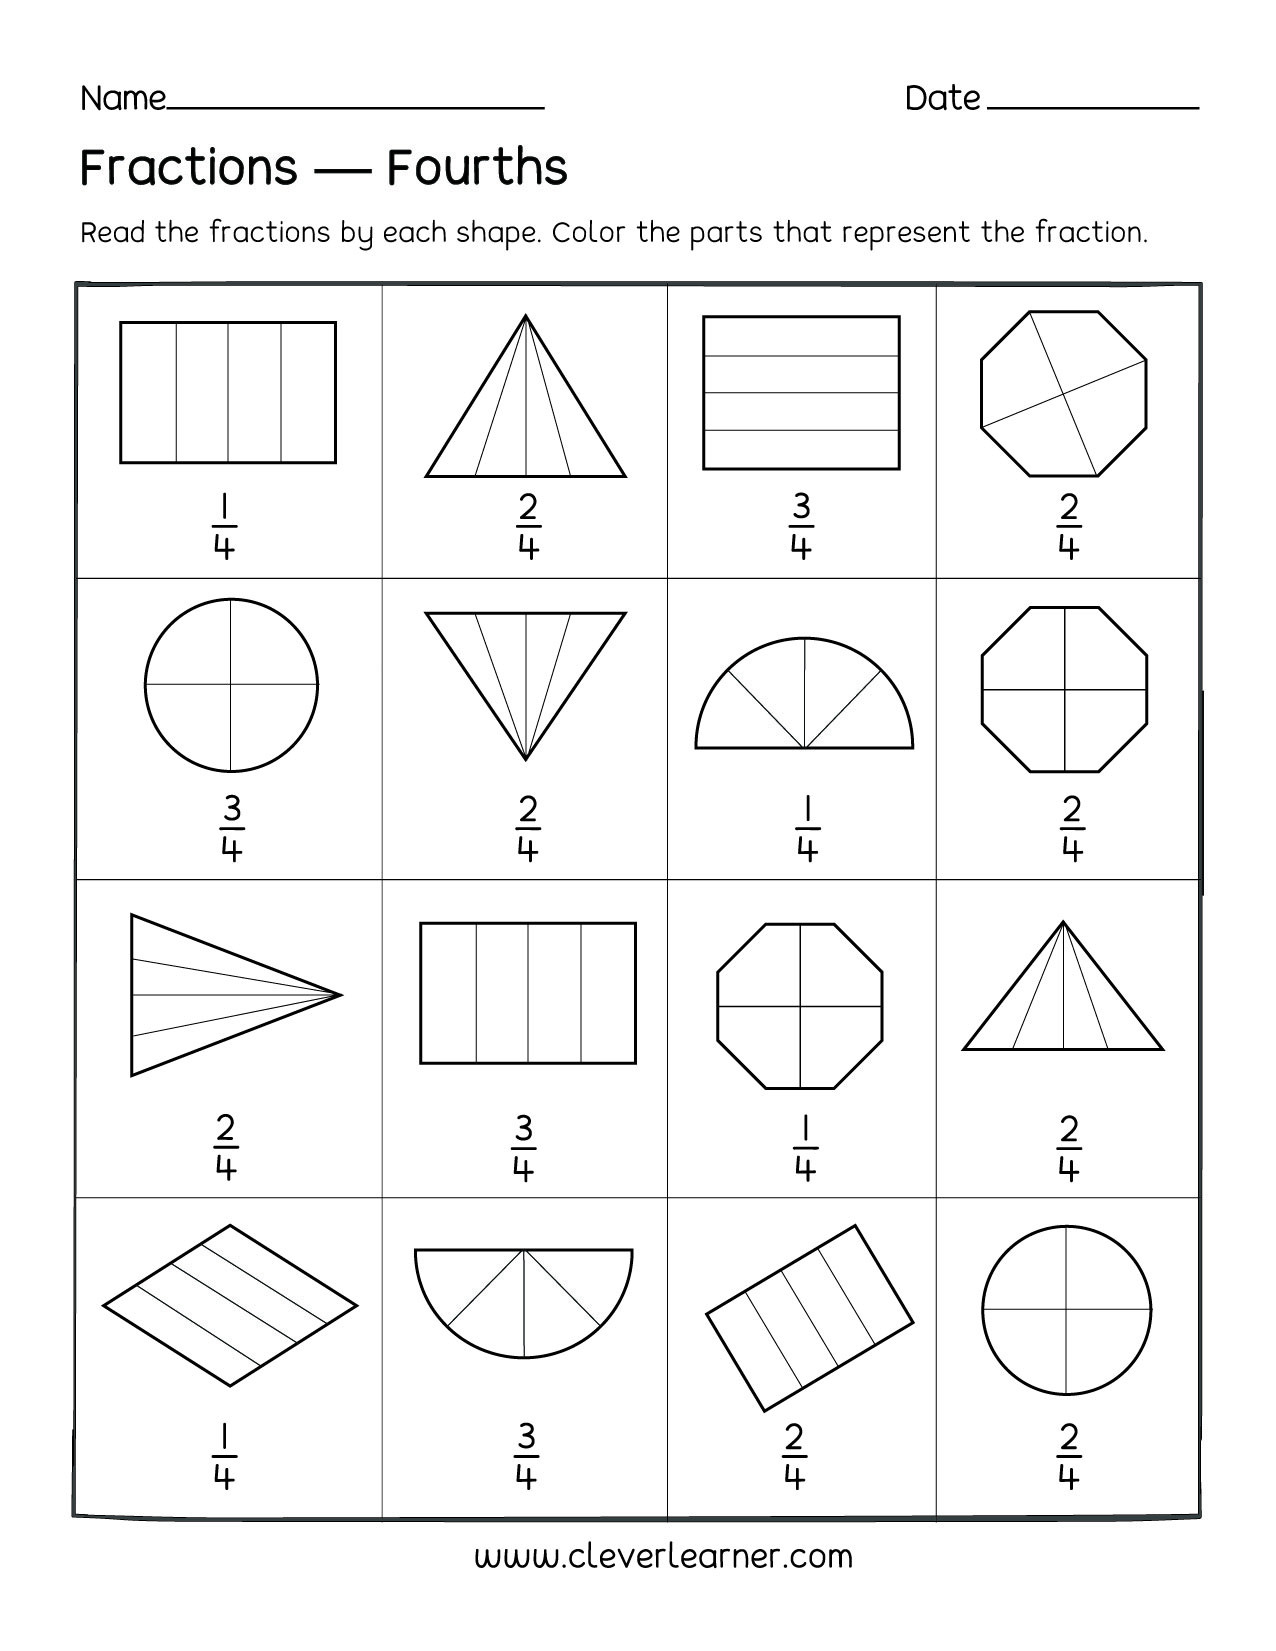 Fractions Worksheets First Grade Fun Activity On Fractions Fourths Worksheets for Children